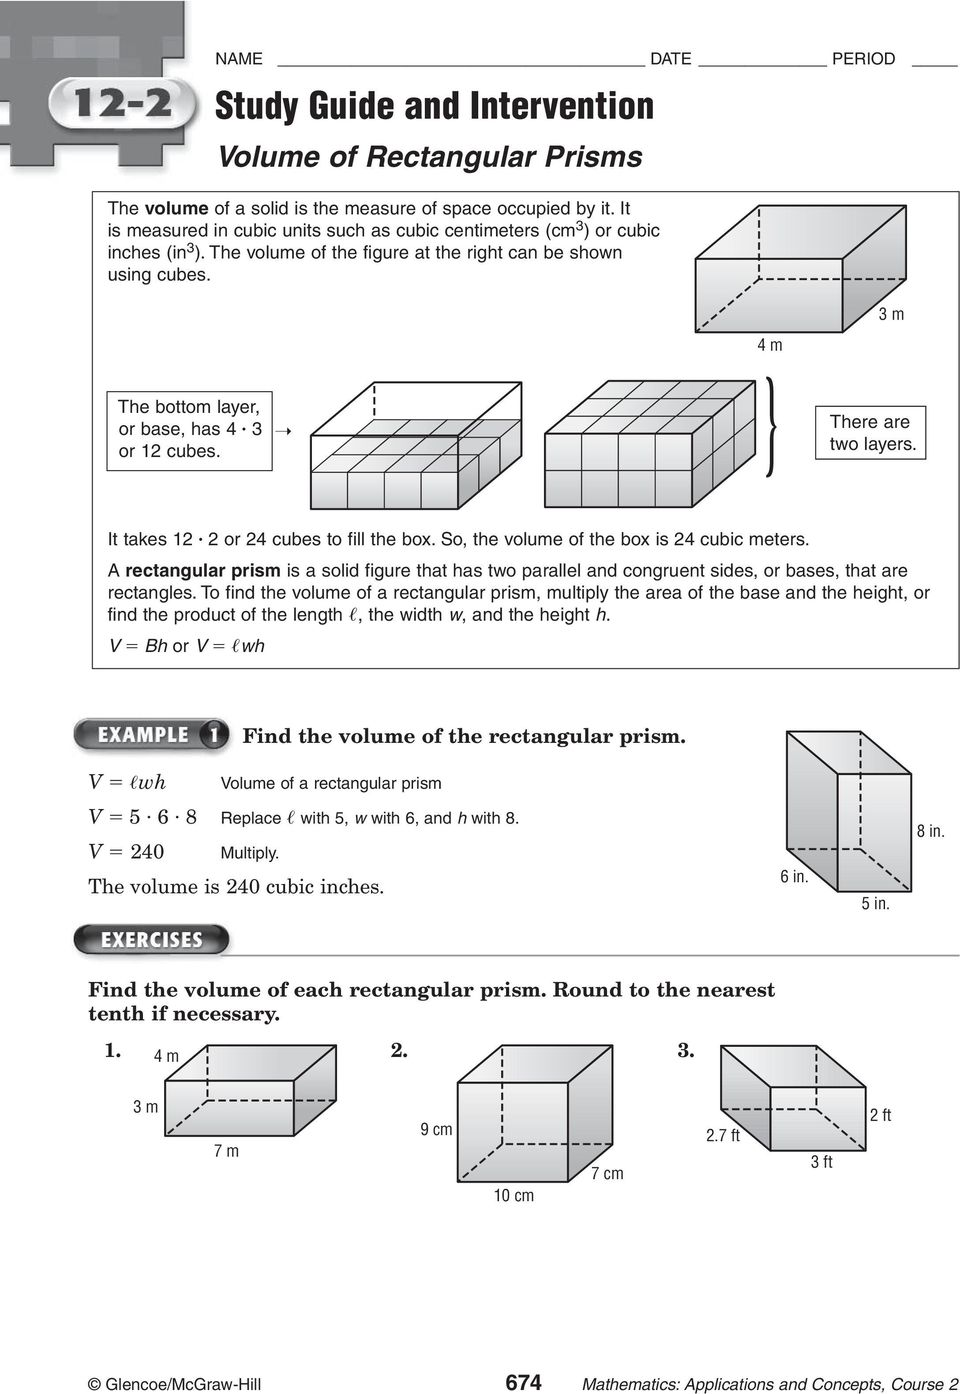 } The bottom layer, or base, has 4 3 or 12 cubes. two There are layers. It takes 12 2 or 24 cubes to fill the box. So, the volume of the box is 24 cubic meters.